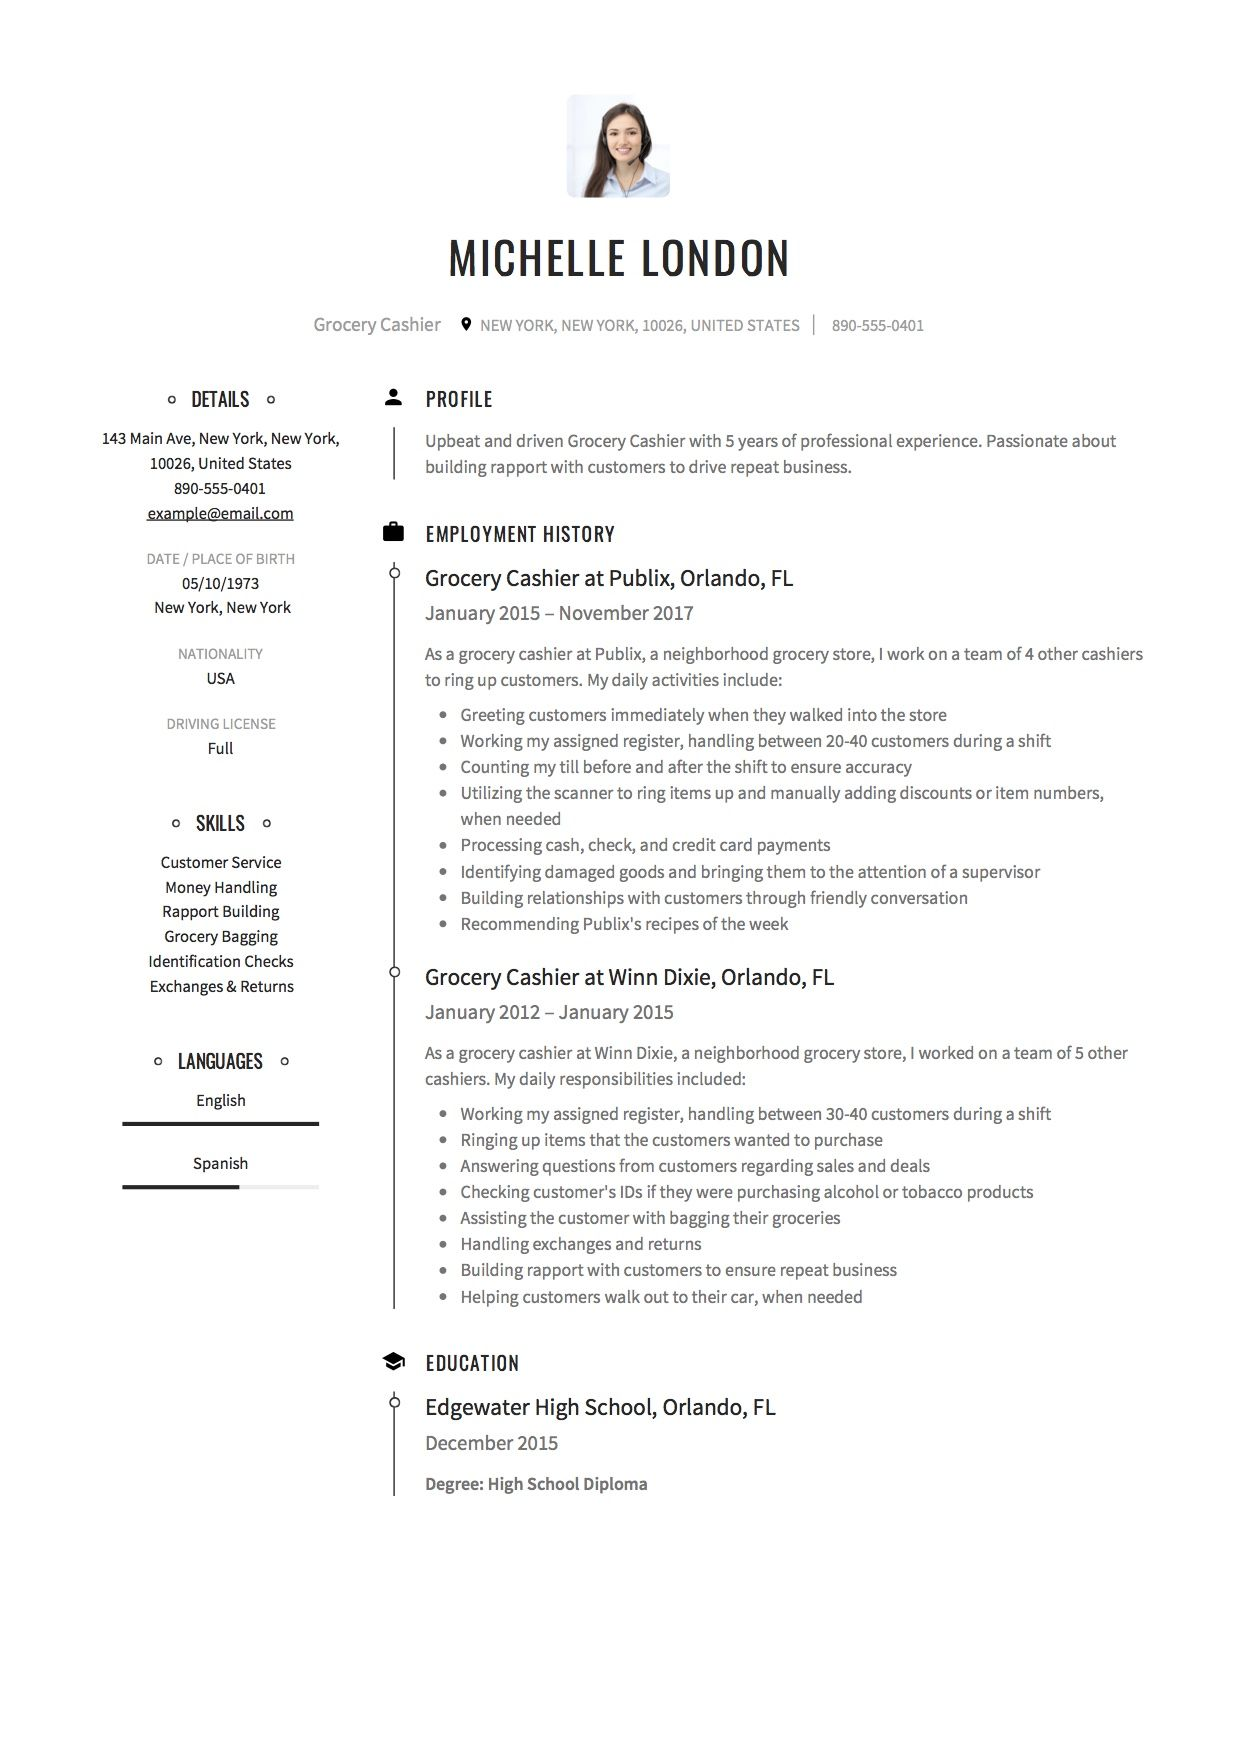 Cashier Description For Resume Grocery Cashier Resume Sample Free Downloadexample  Resume